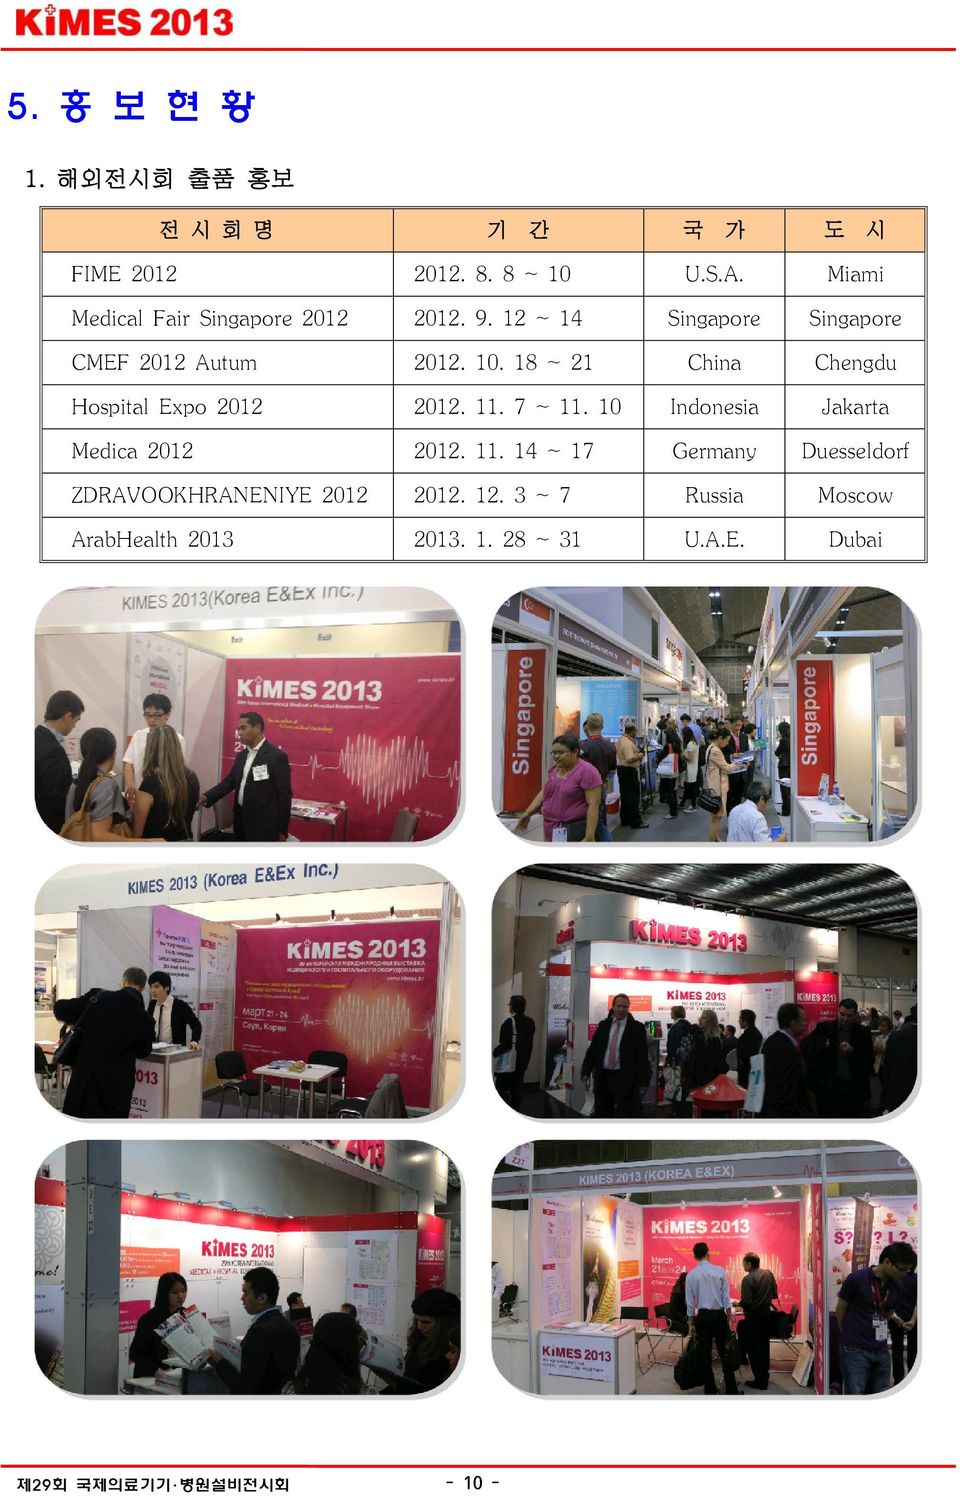 18 ~ 21 China Chengdu Hospital Expo 2012 2012. 11. 7 ~ 11. 10 Indonesia Jakarta Medica 2012 2012. 11. 14 ~ 17 Germany Duesseldorf ZDRAVOOKHRANENIYE 2012 2012.